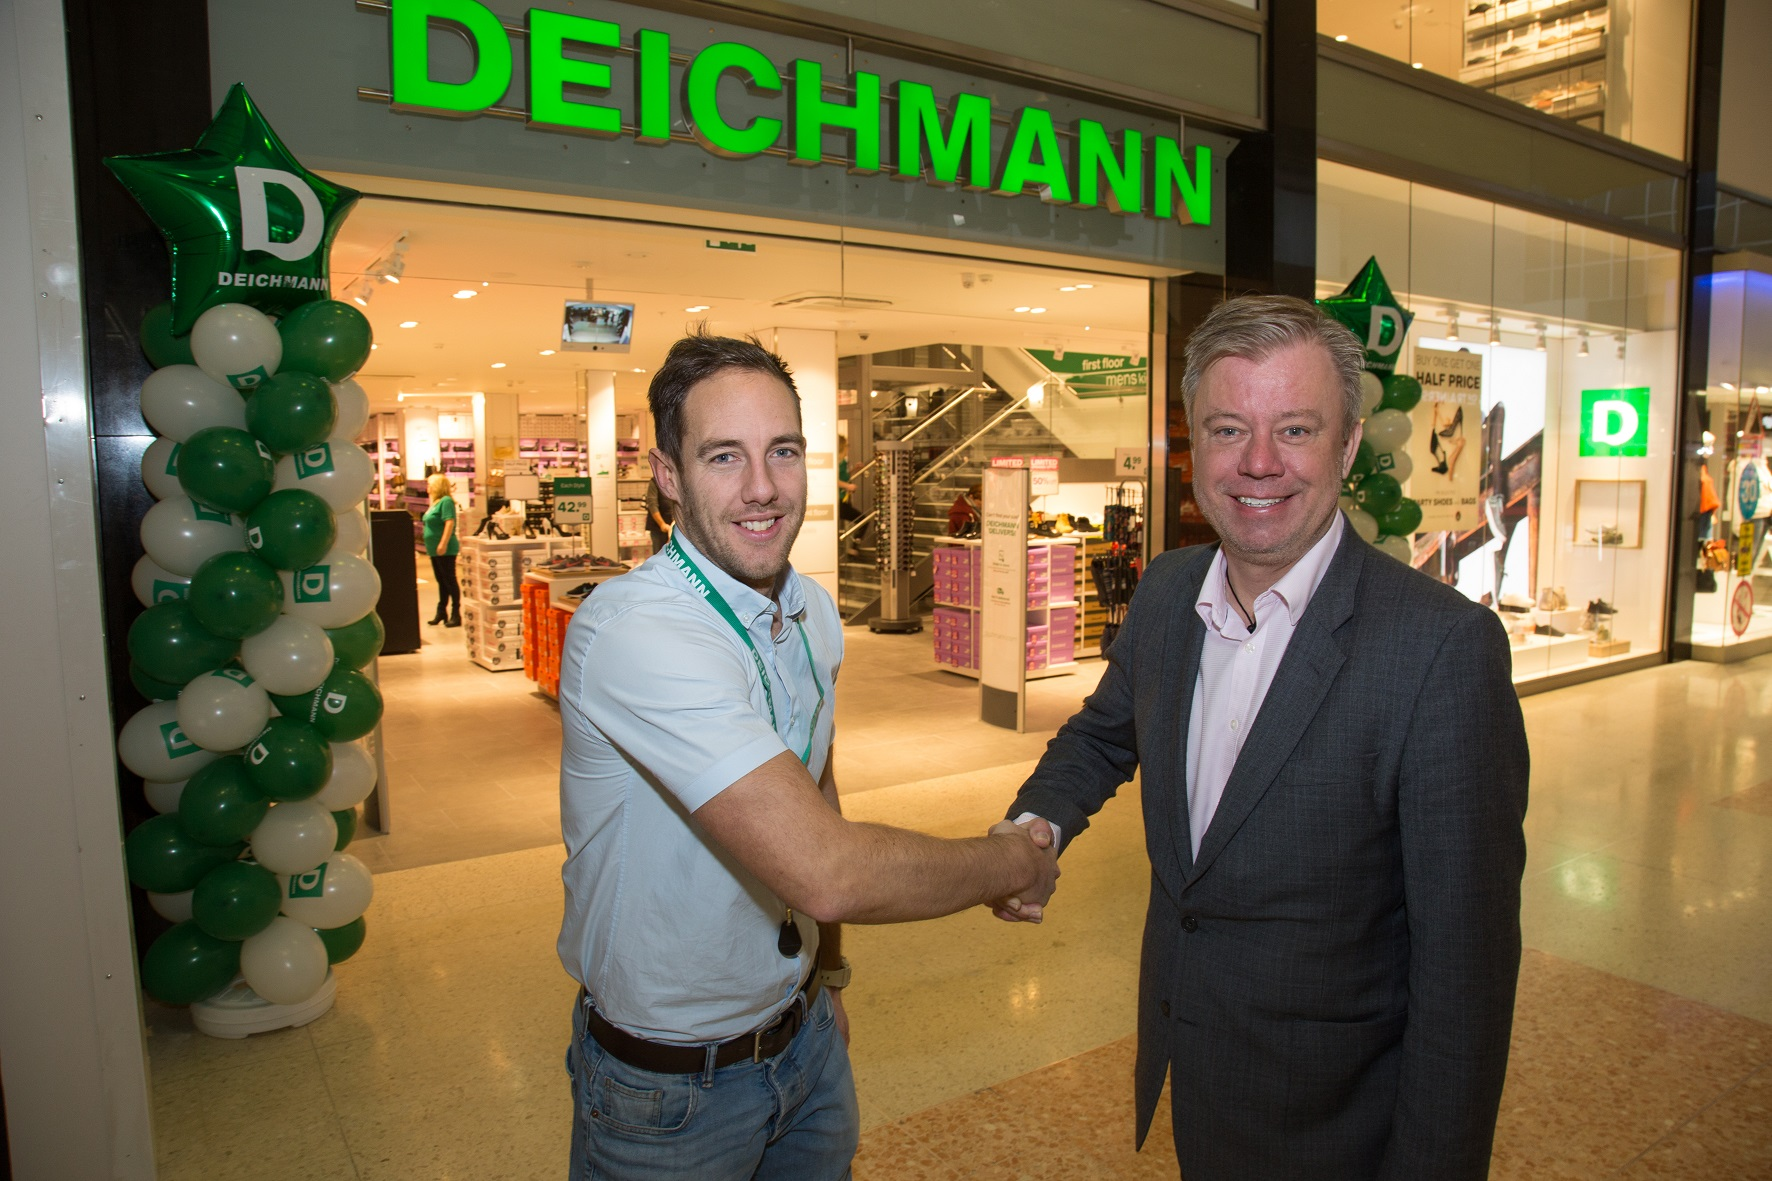 Opening of the new Deichmann shop in The Dolphin Shopping Centre in Poole, Dorset. Regional Store Manager Adrian Burnell with John Grinnell, Dolphin Shopping Centre Manager.